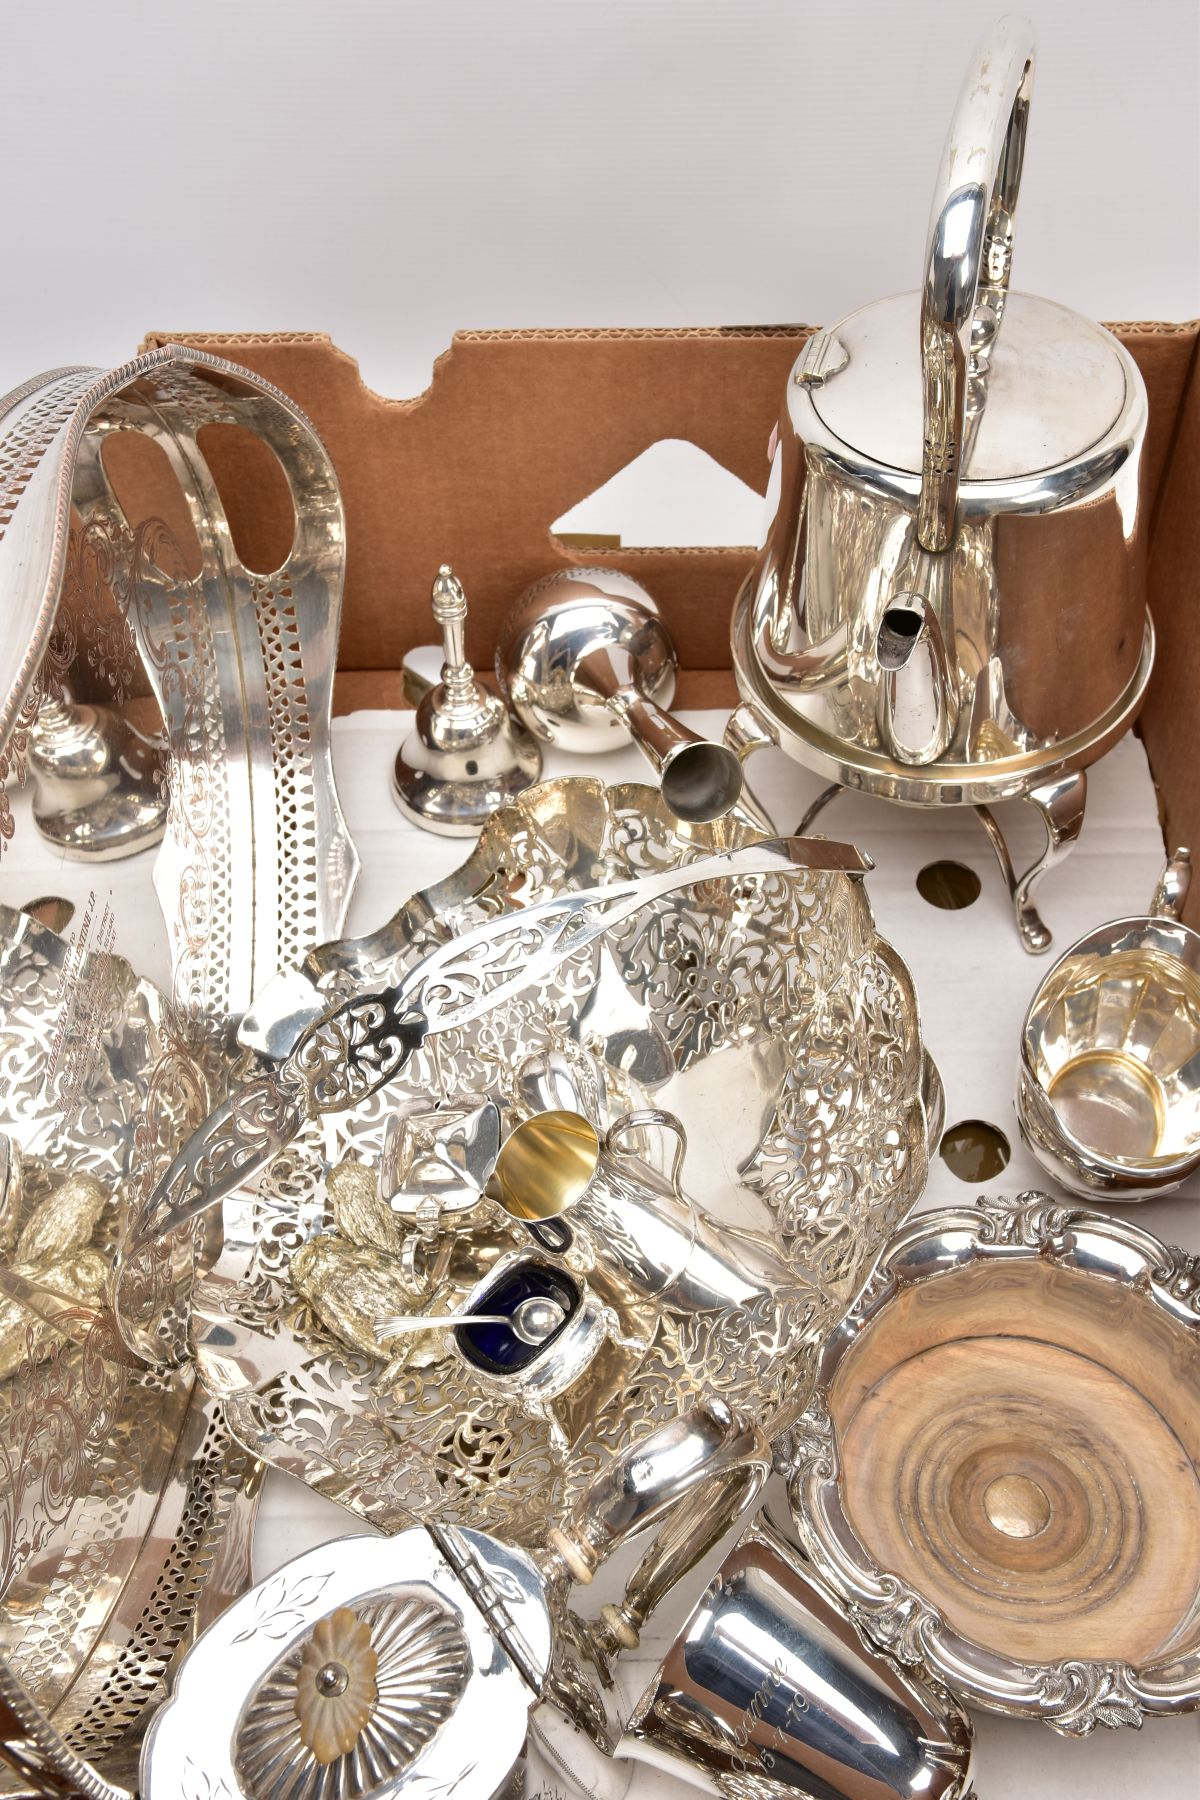 A BOX CONTAINING A QUANTITY OF SILVER PLATED ITEMS, to include a teapot and coffeepot with stand, - Image 5 of 7